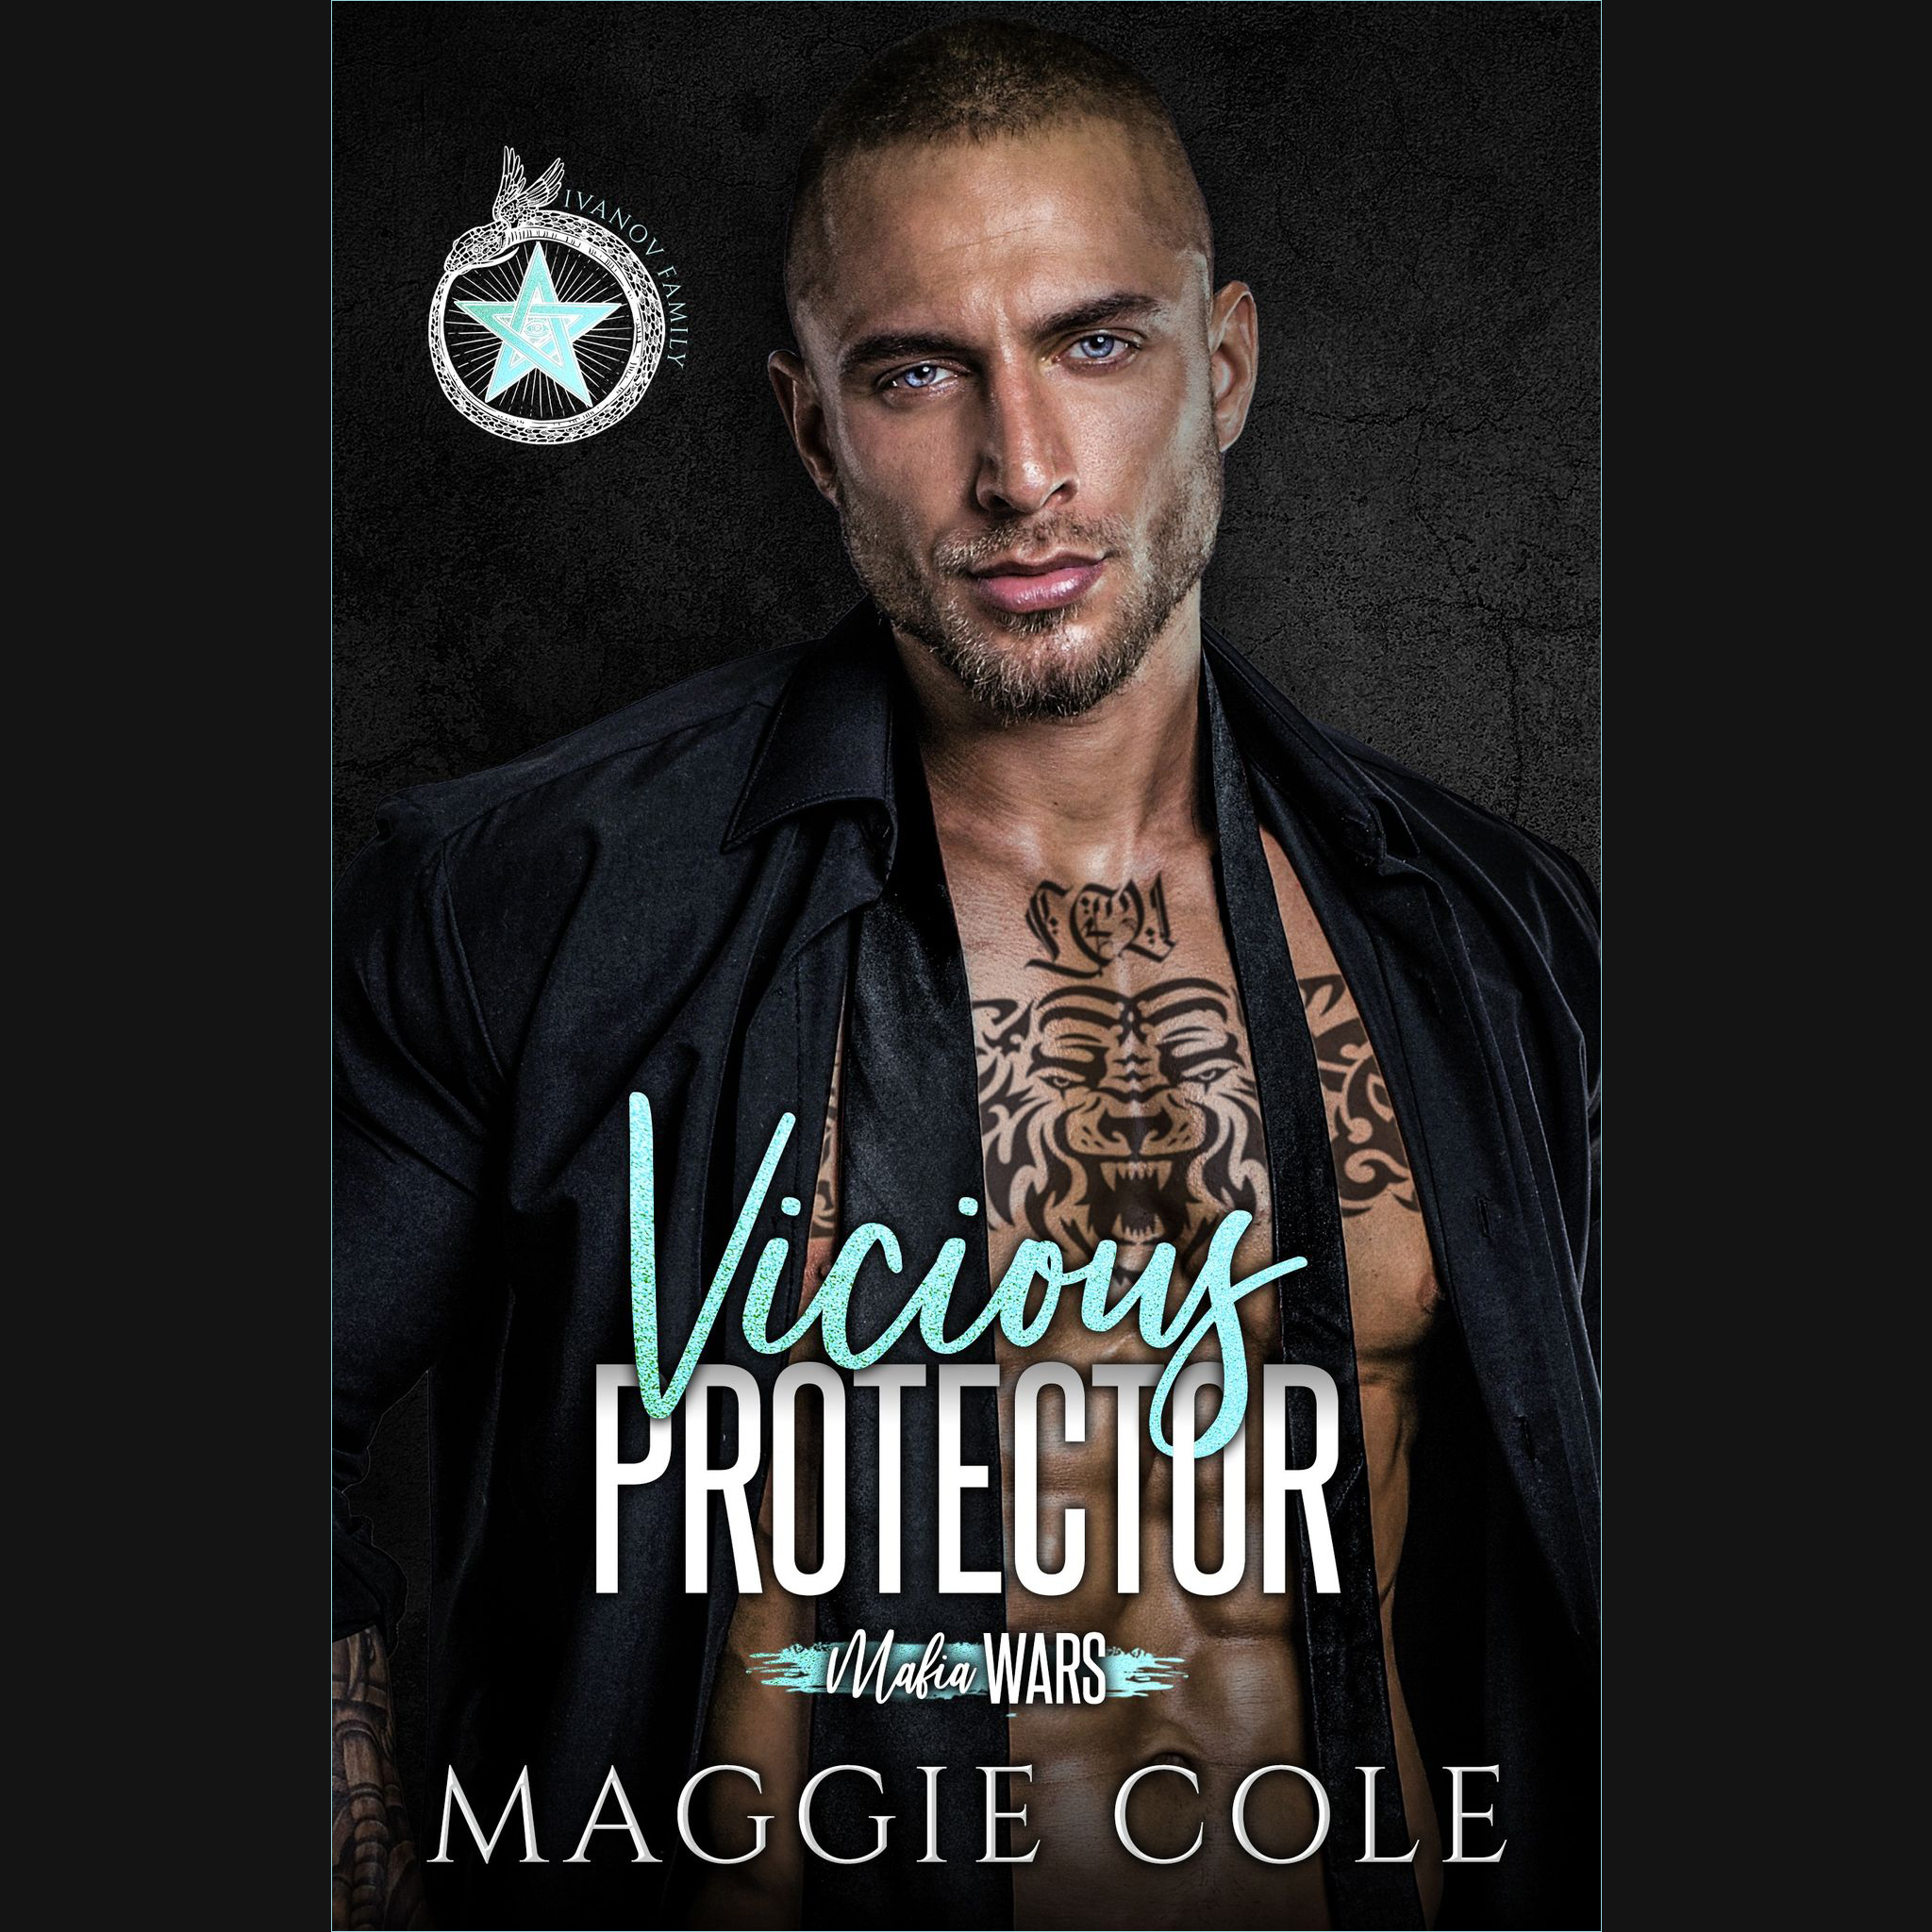 Vicious Protector by Maggie Cole